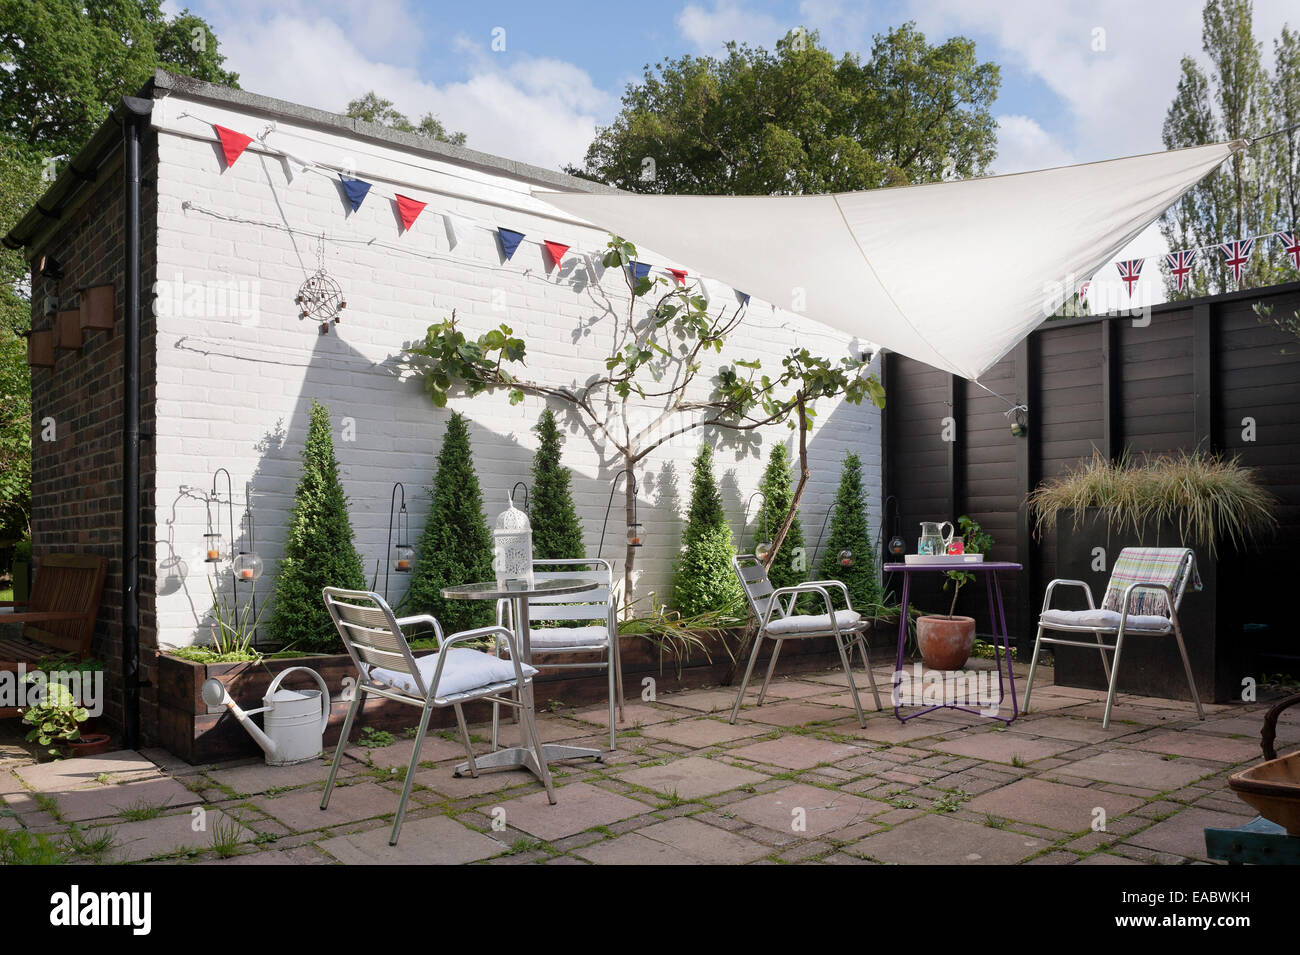 Chrome chairs and tables in paved garden with bunting and garden shade sail - Stock Image